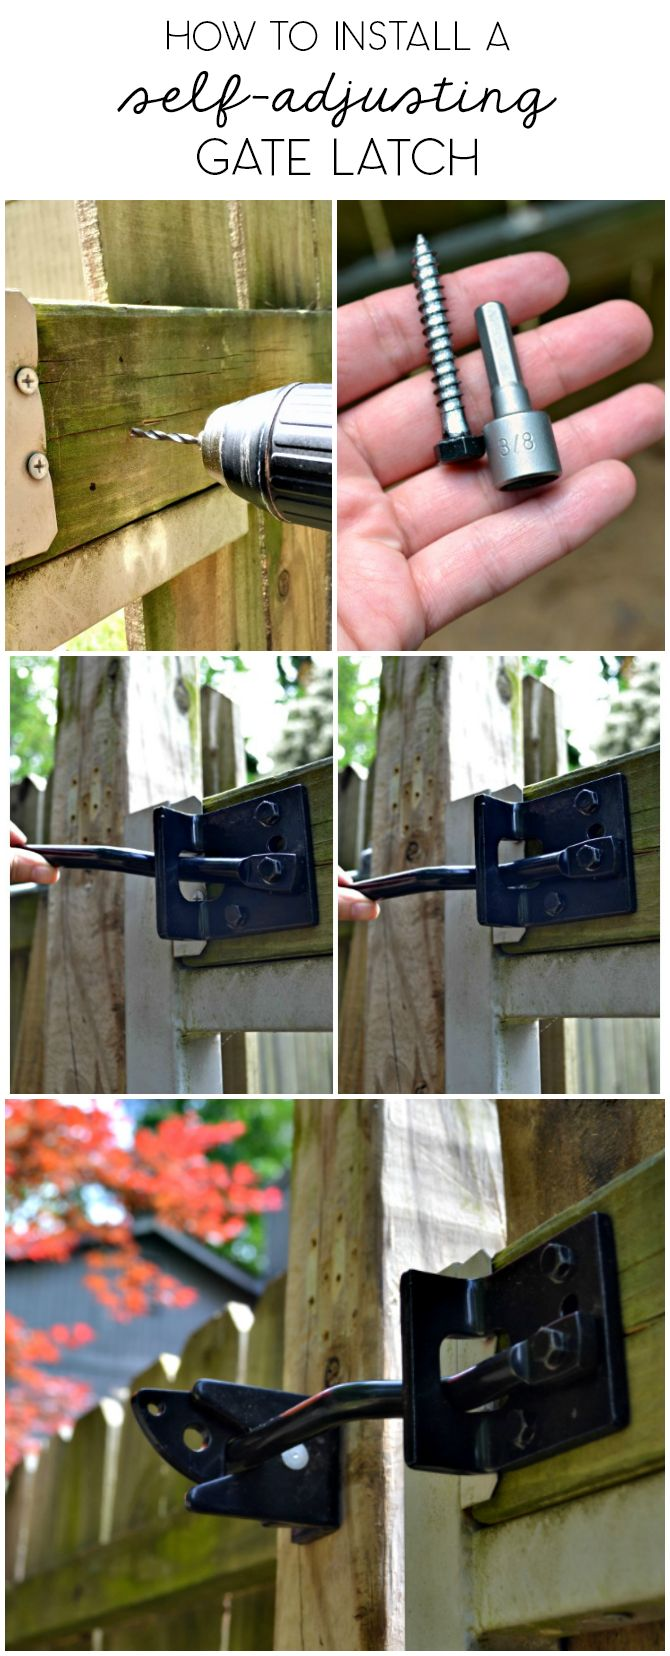 thumb latch installation instructions